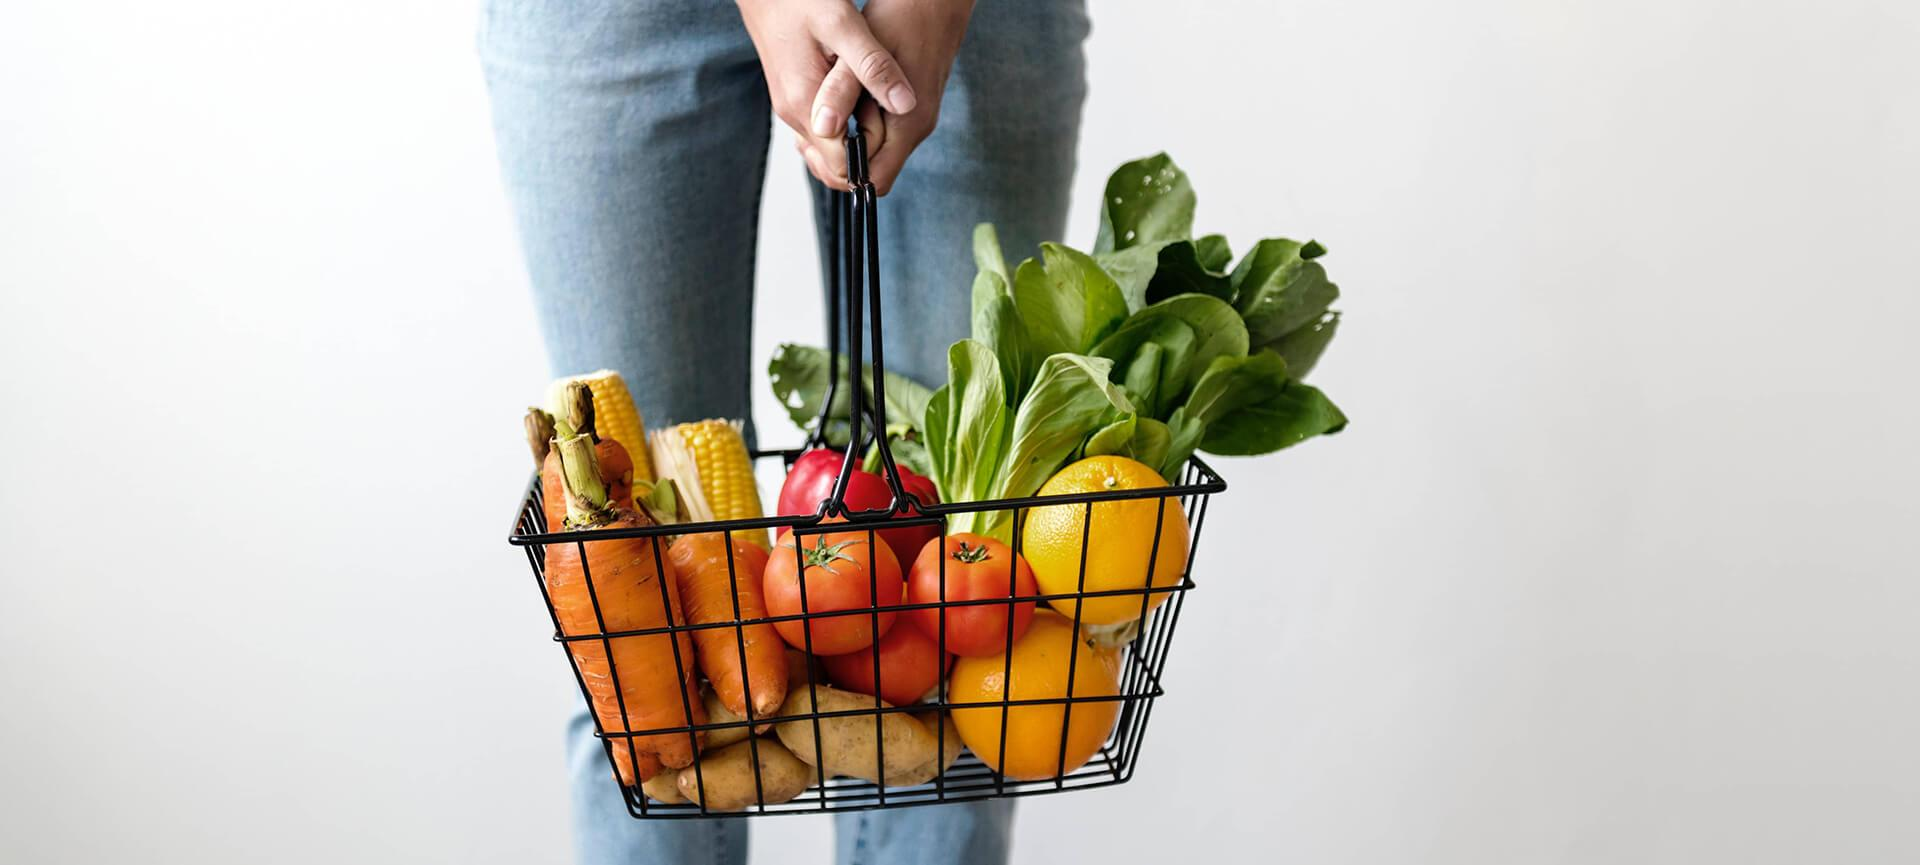 Woman holding basket of groceries